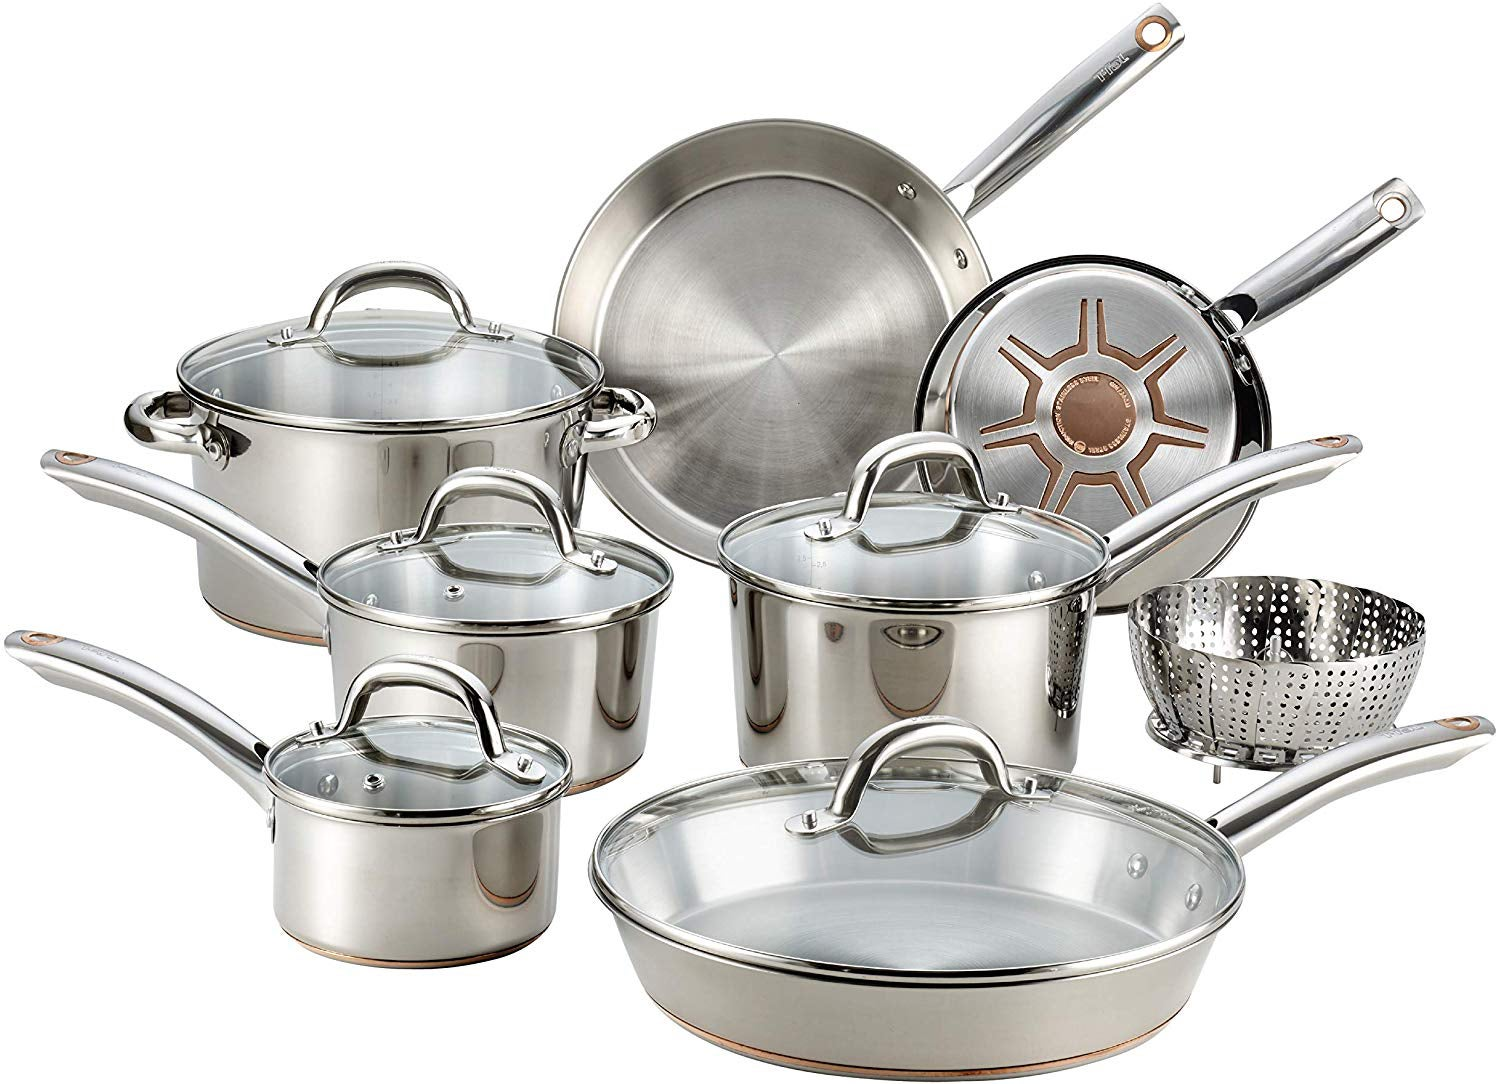 T-fal Ultimate Stainless Steel Copper Bottom 13 PC Cookware Set